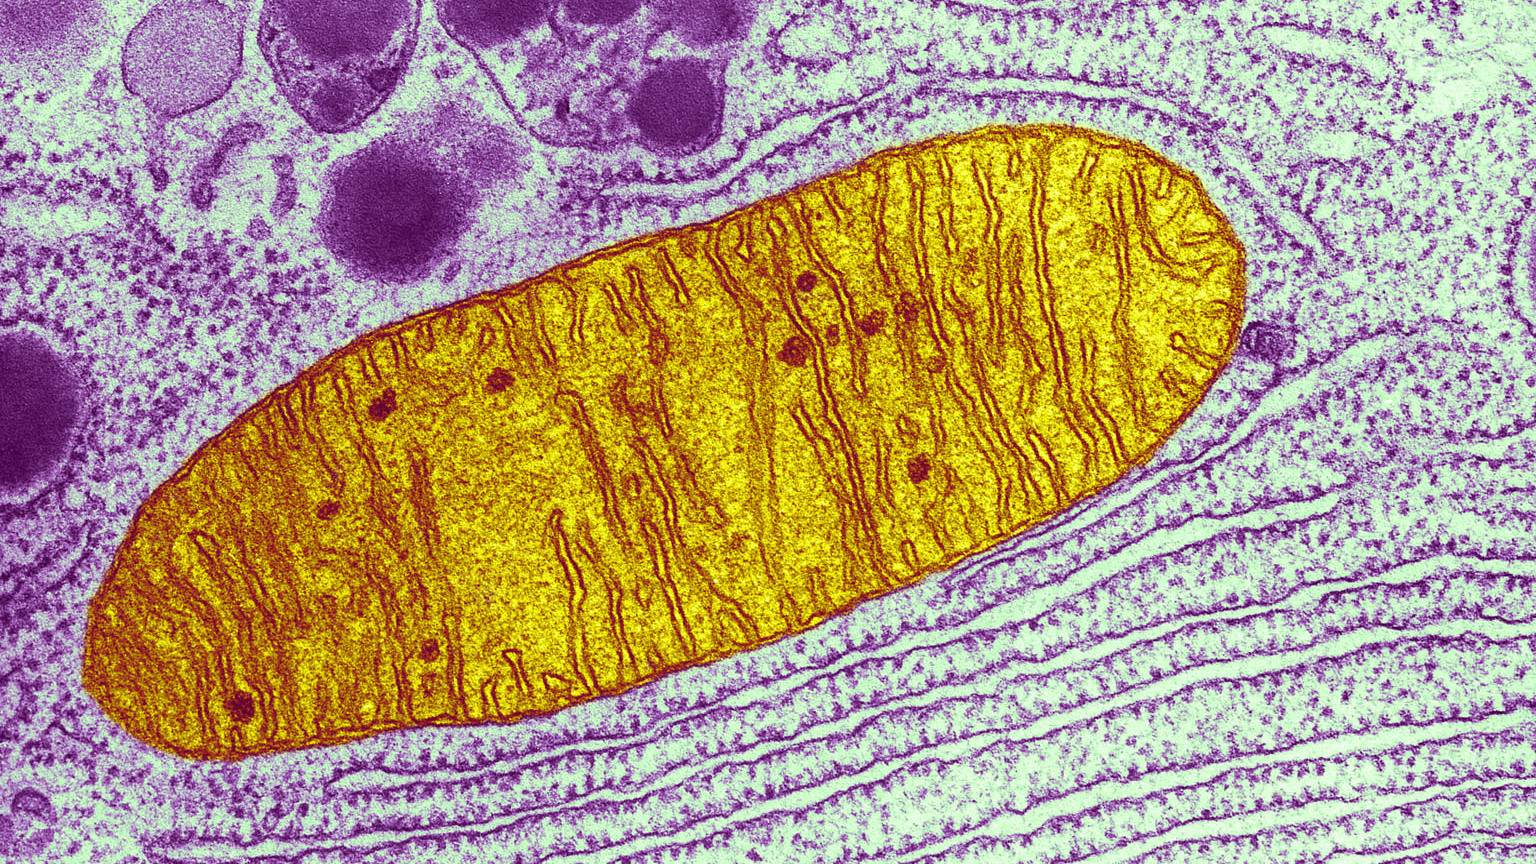 This micrograph shows a single mitochondrion, one of many little energy factories inside a cell.